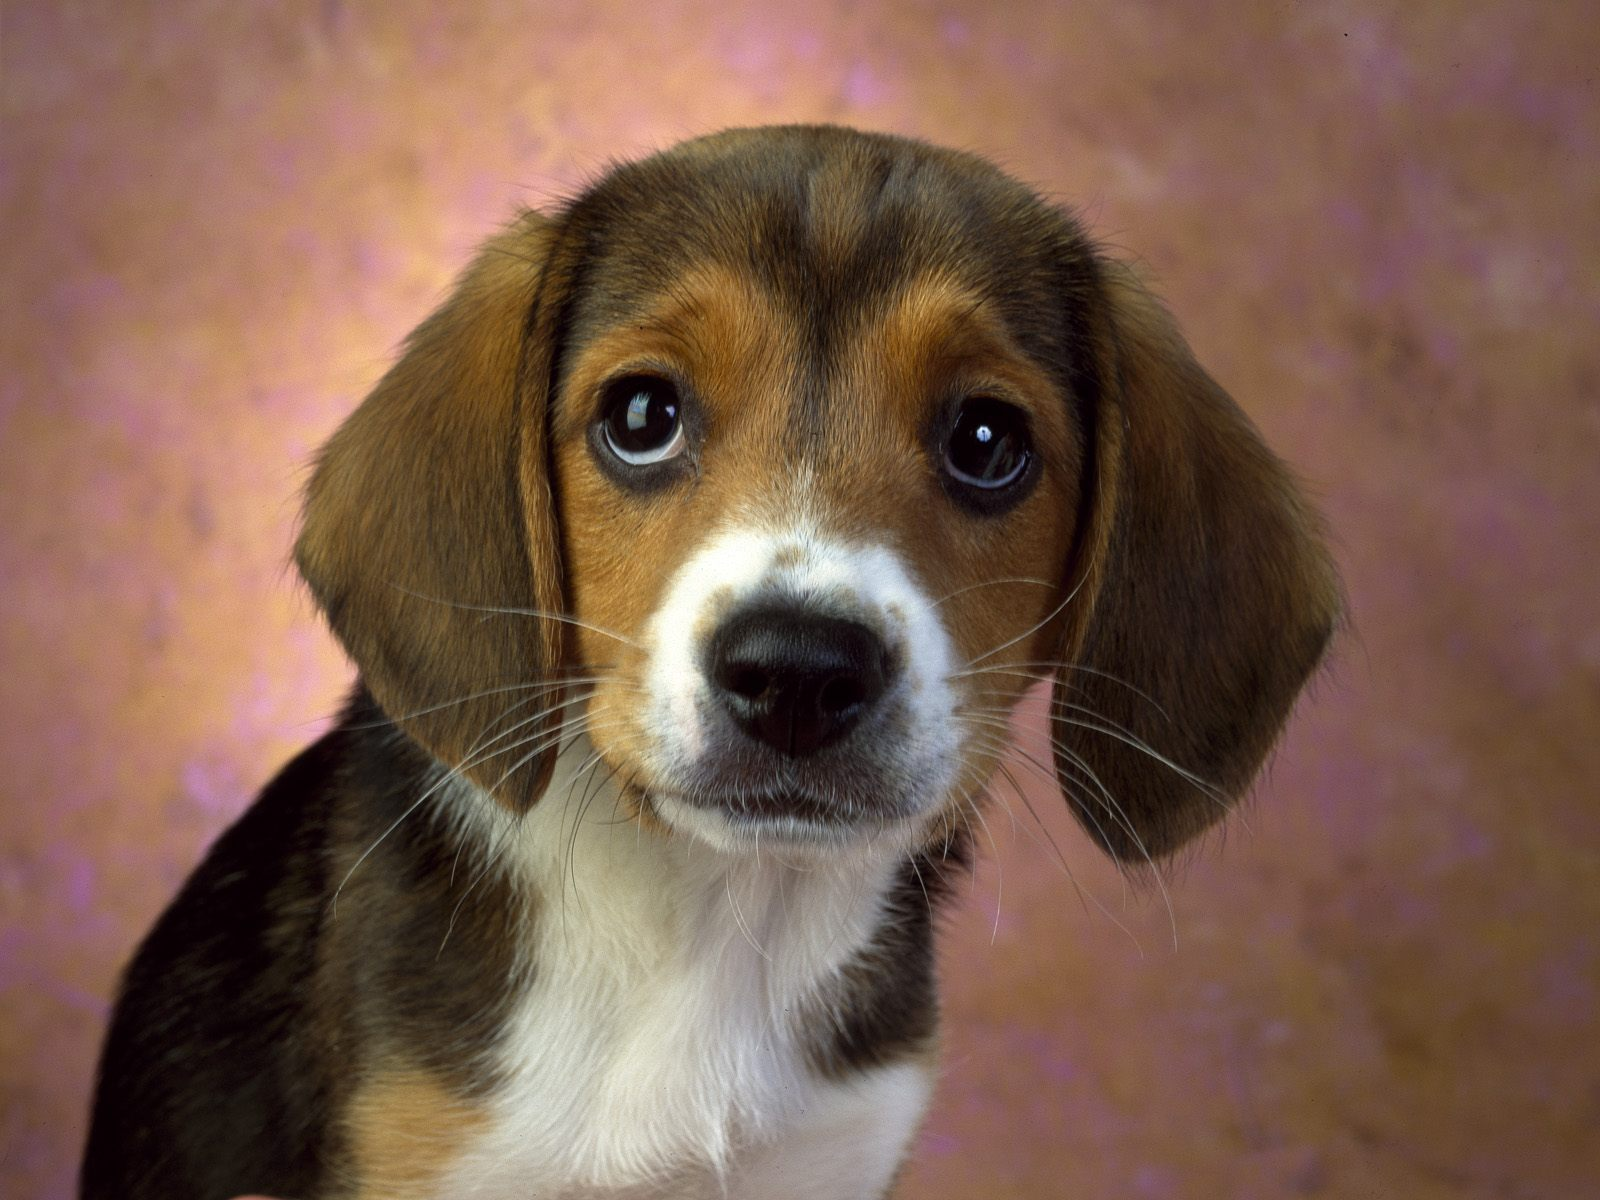 Wonderful Small Beagle Adorable Dog - Beagle-puppy-dog-hound-dogs-15363092-1600-1200  Photograph_586164  .jpg